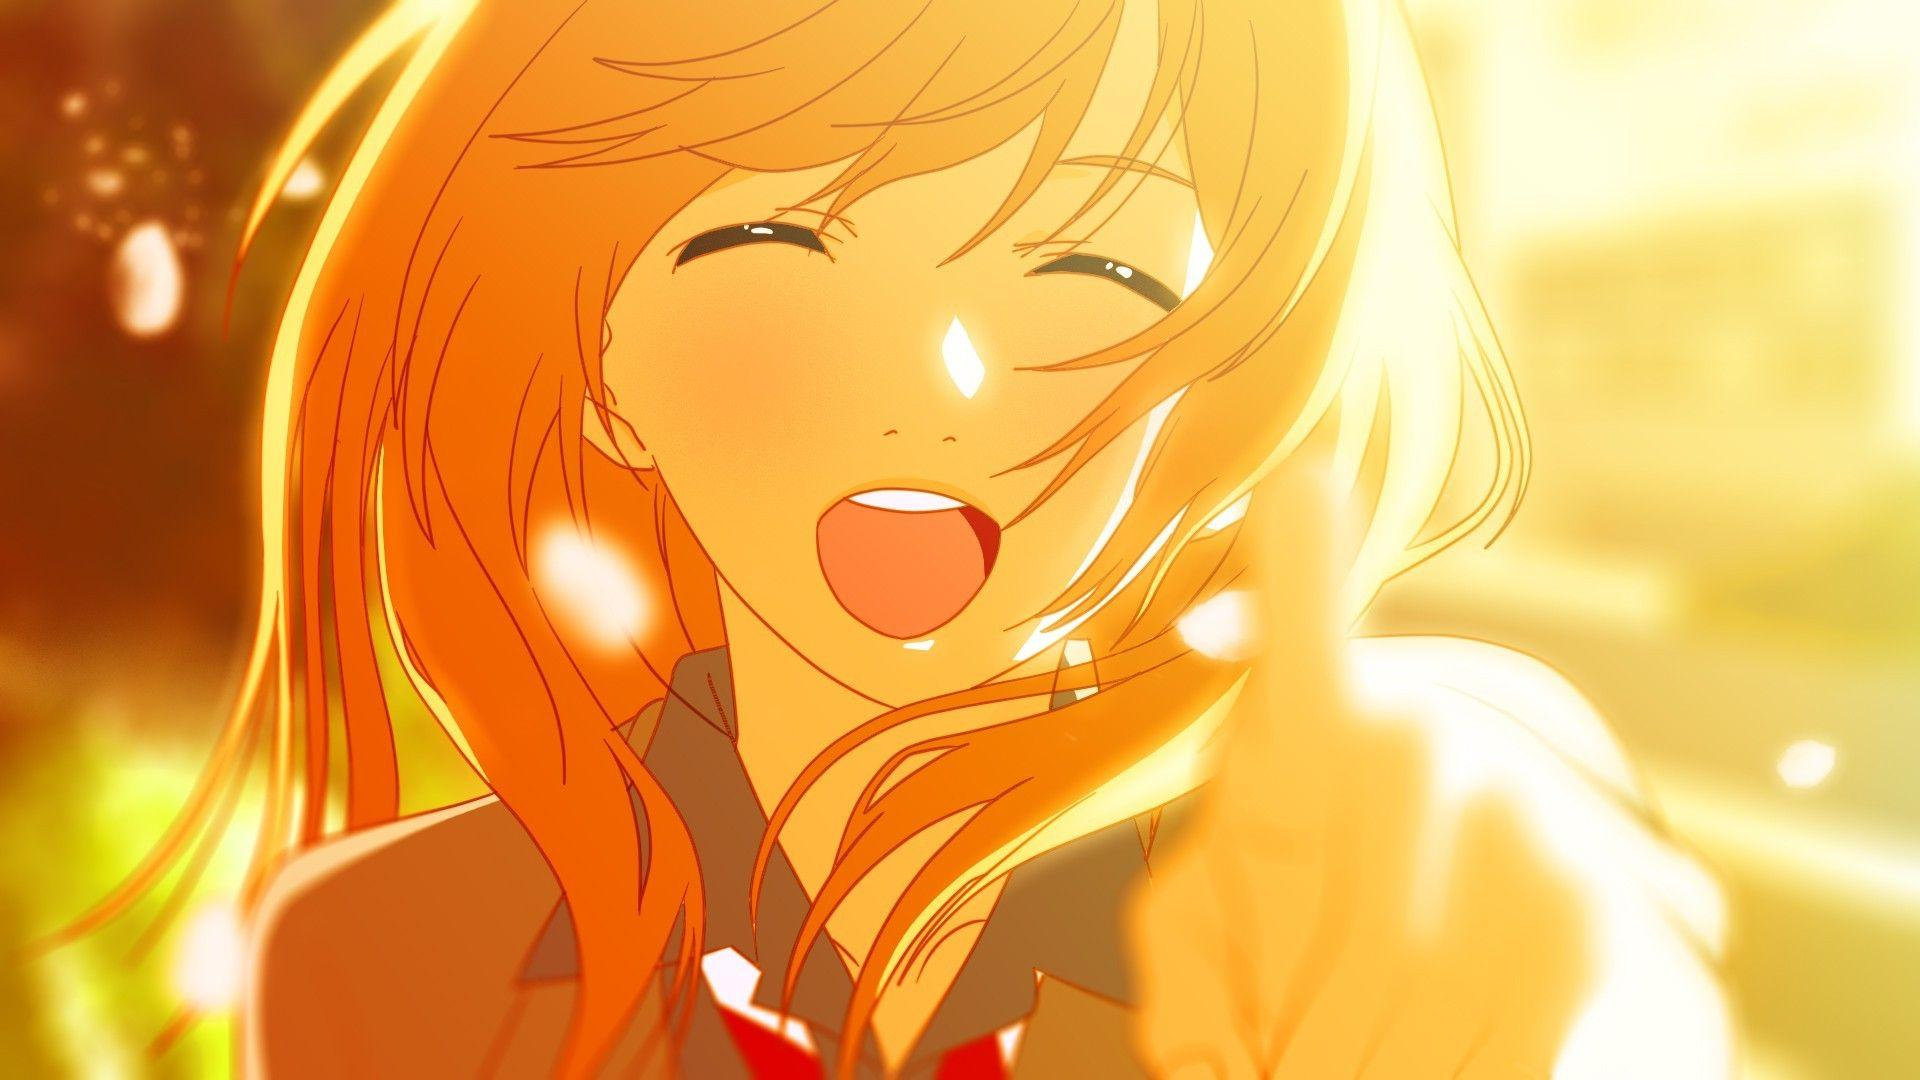 Wallpapers : illustration, blonde, anime girls, yellow, school